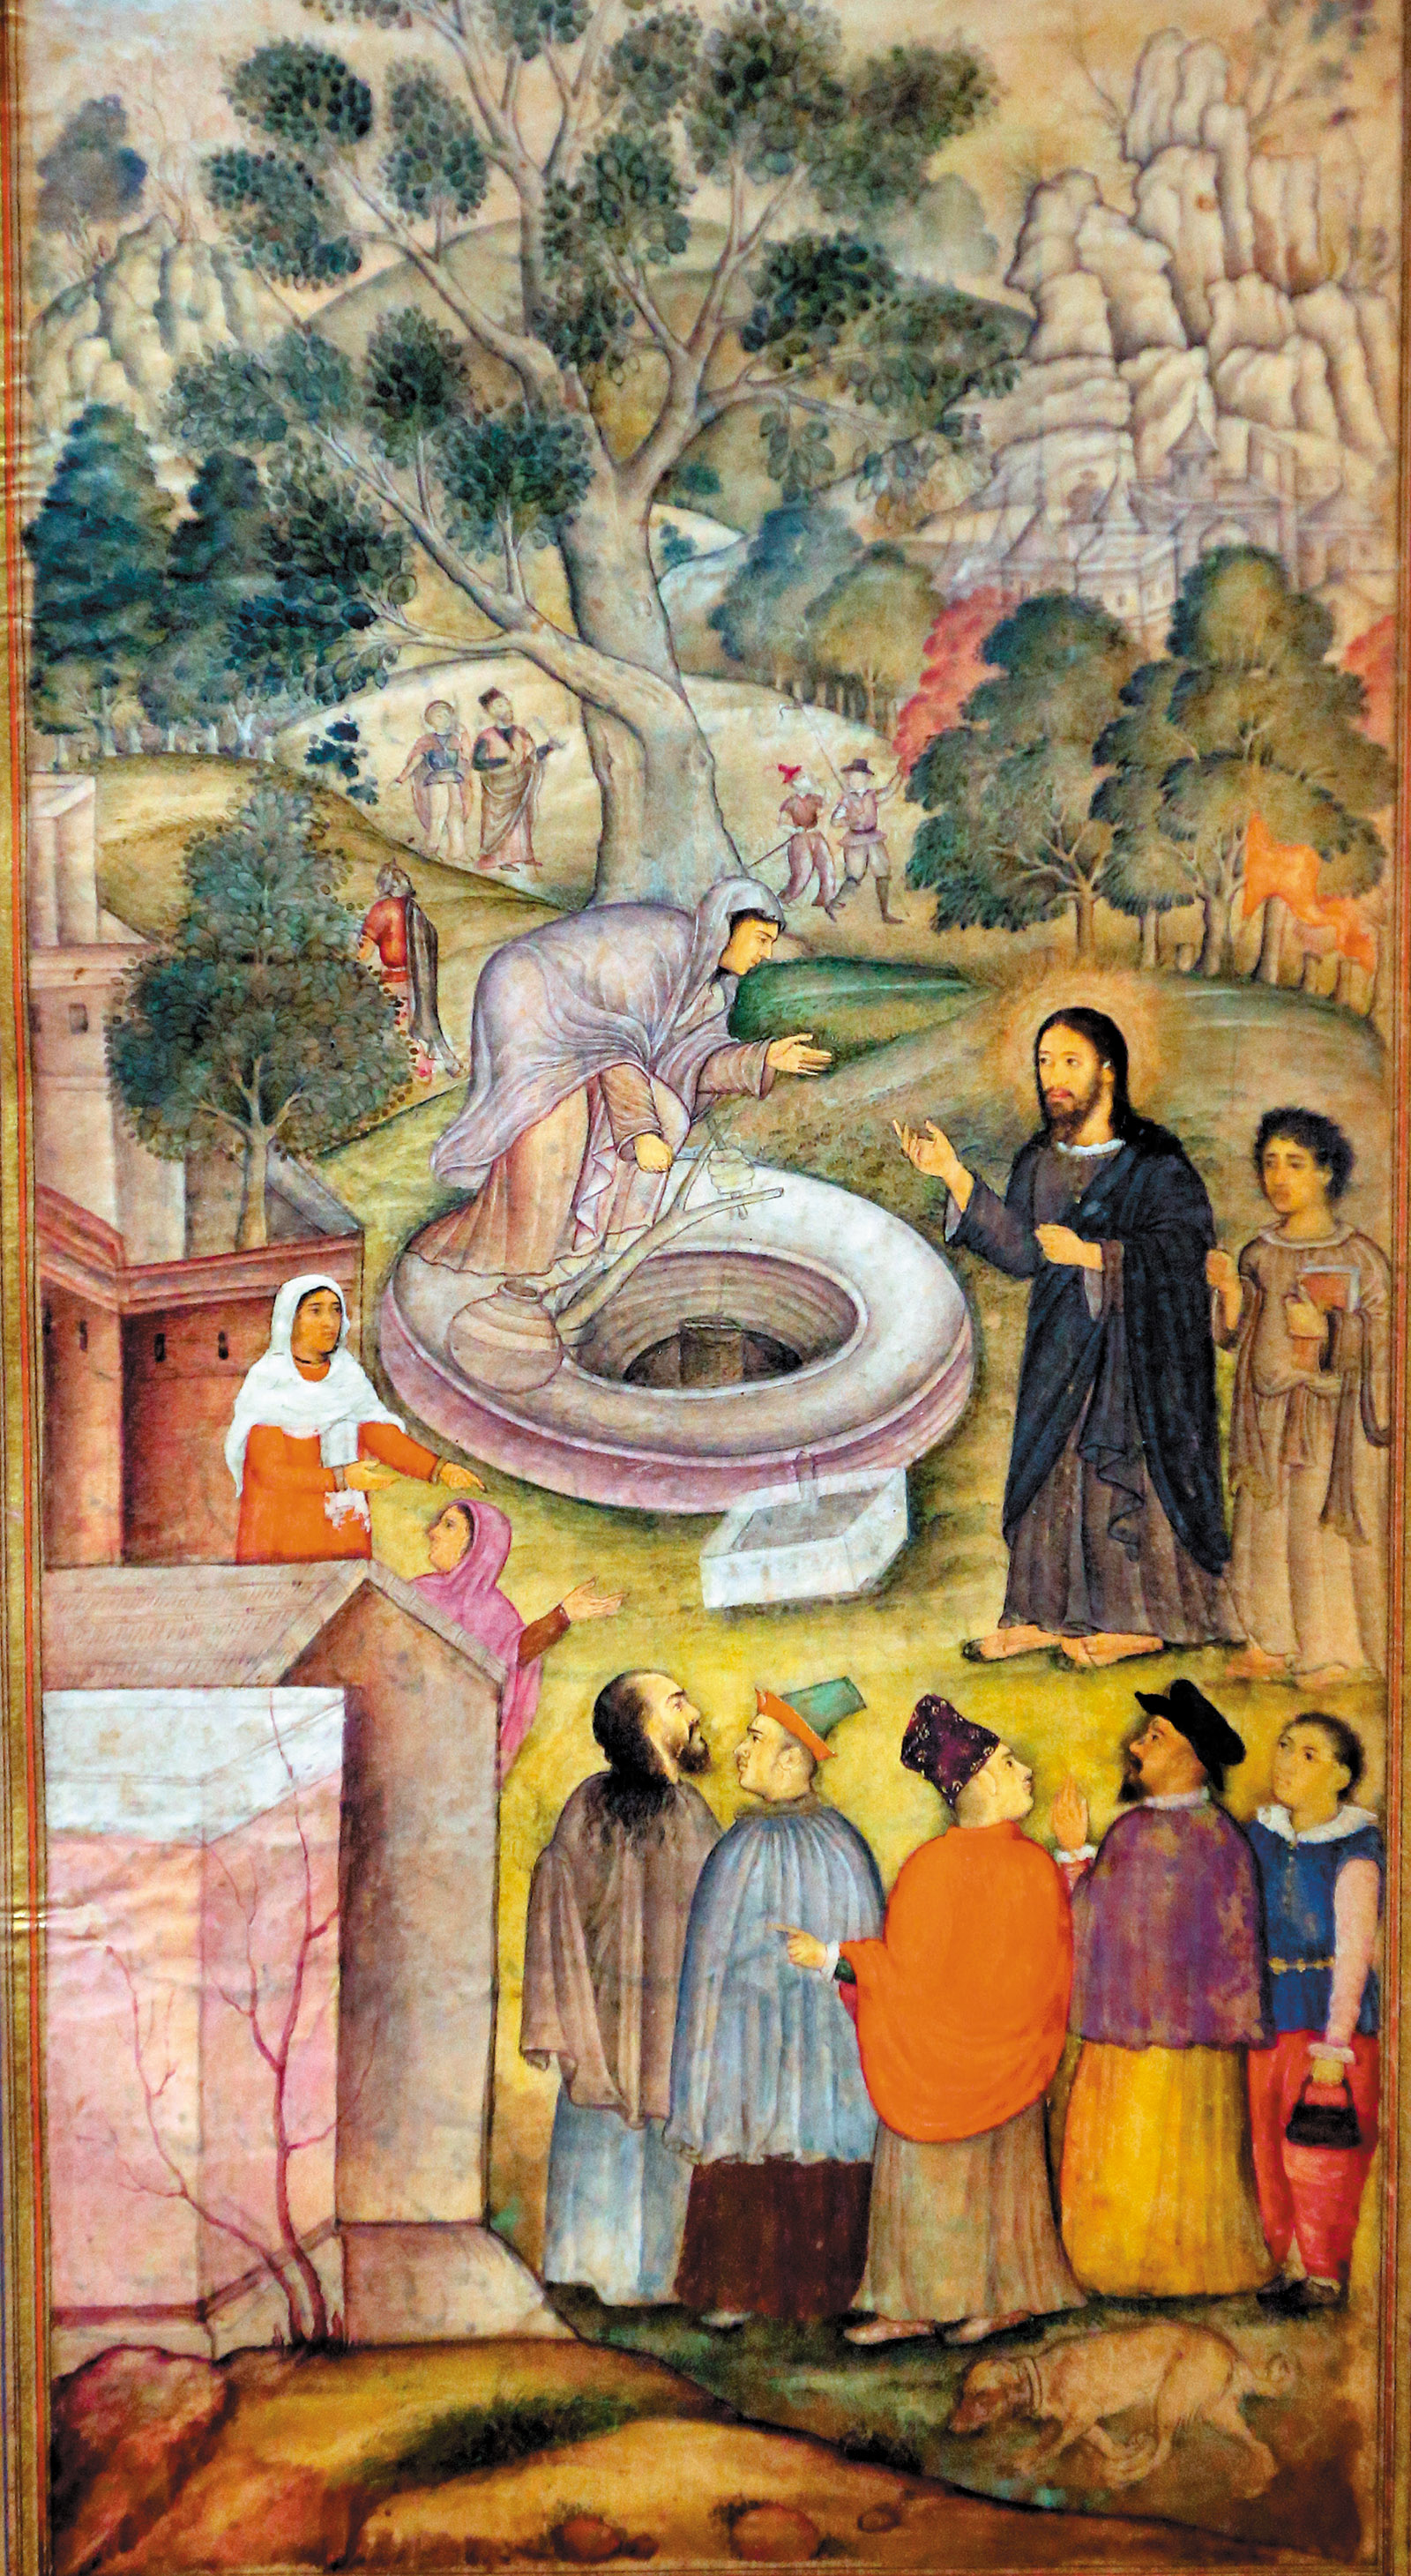 Jesus and the Samaritan woman at the well by the Jesuit priest Jerome Xavier